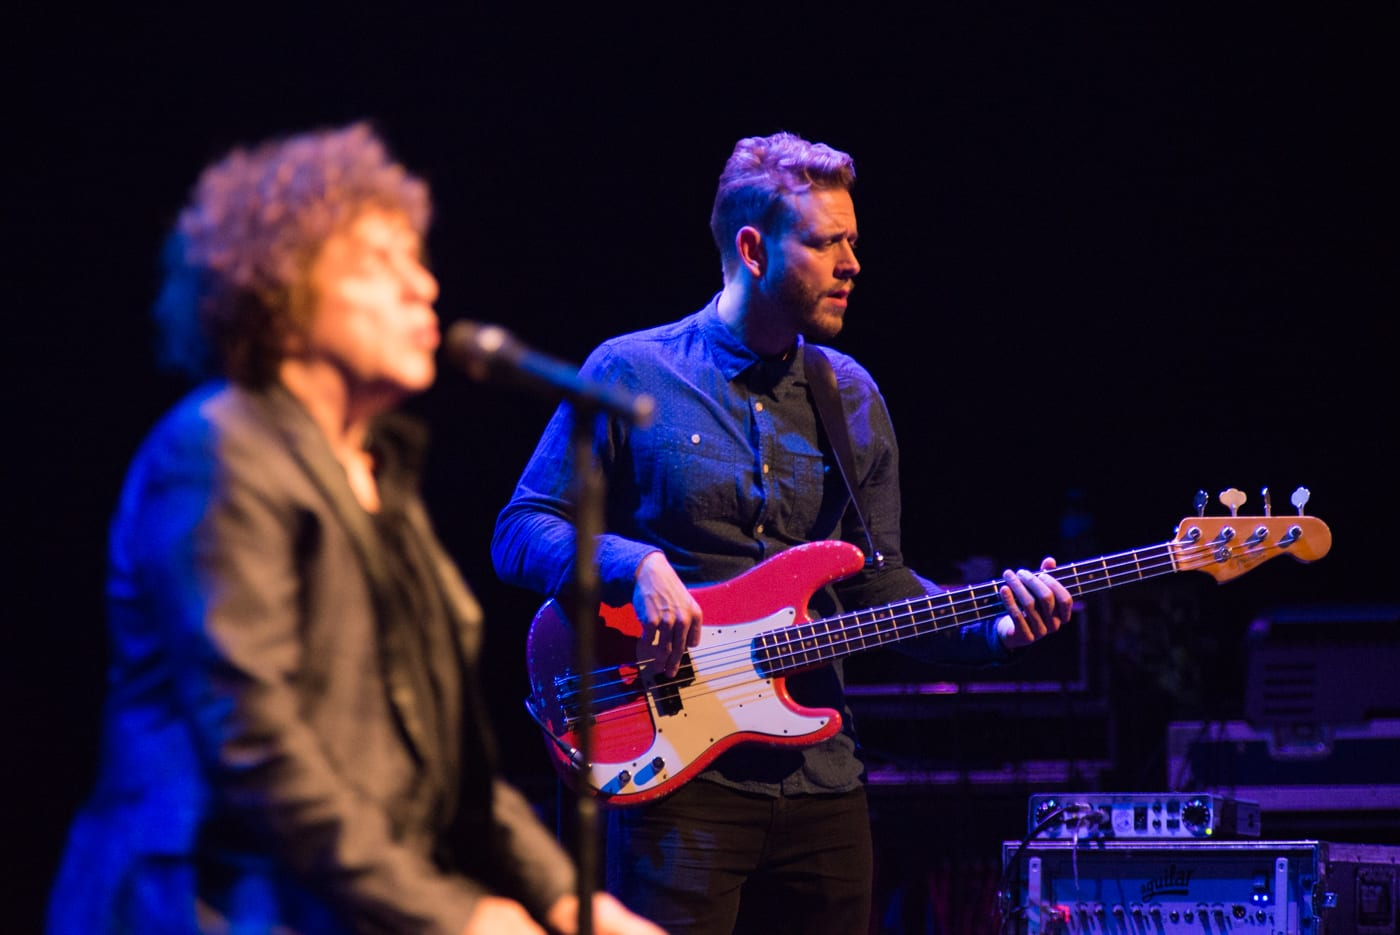 Leo Sayer at Bord Gais Energy Theatre by Sean Smyth (16-10-15) (83 of 129)